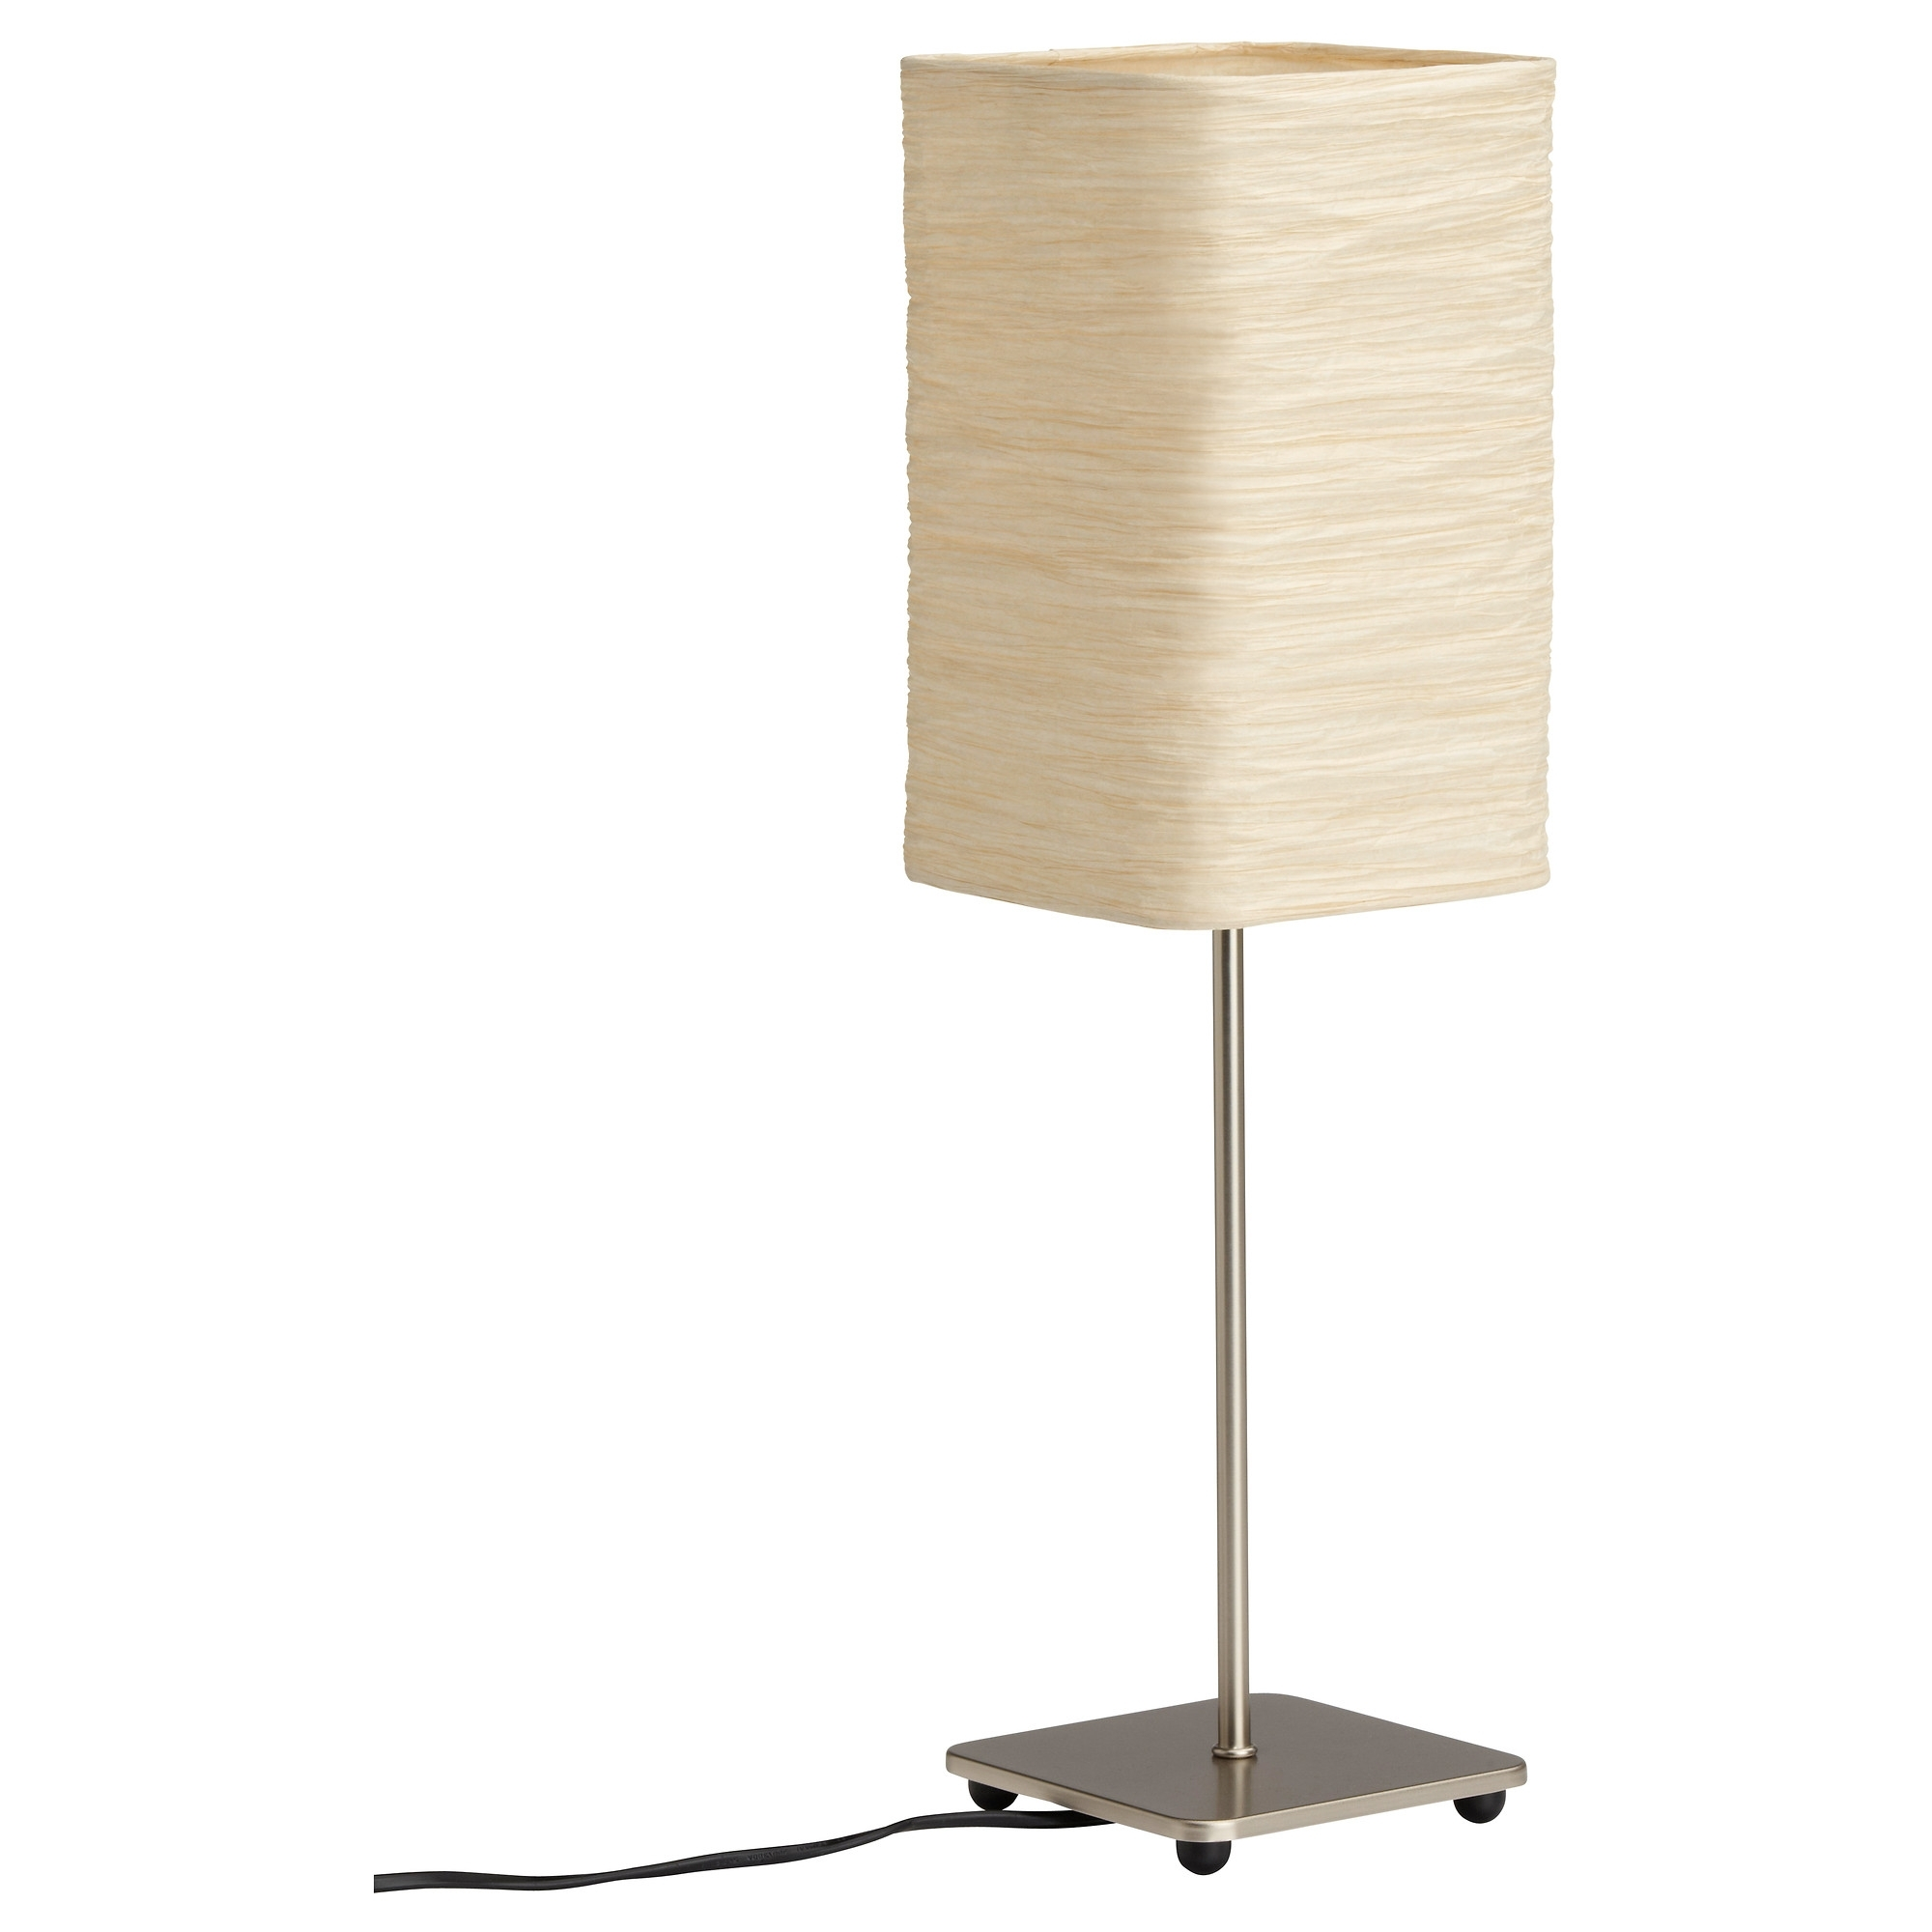 Cordless Table Lamps Ikea ~ Best Inspiration For Table Lamp Intended For Famous Living Room Table Lamps At Ikea (View 1 of 20)